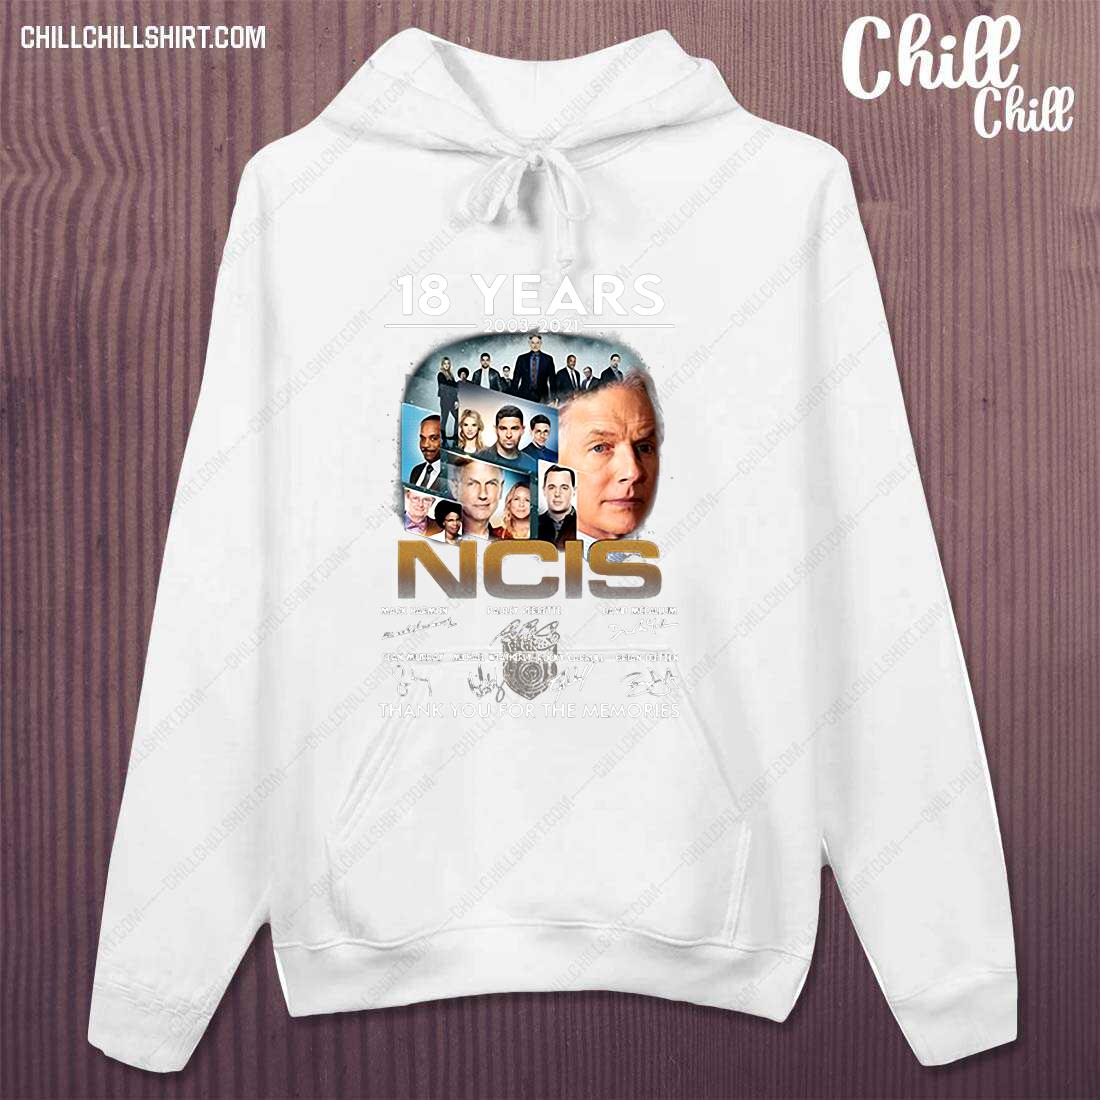 18 Years 2003-2021 Ncis Signature Thank You For The Memories Shirt hoodie